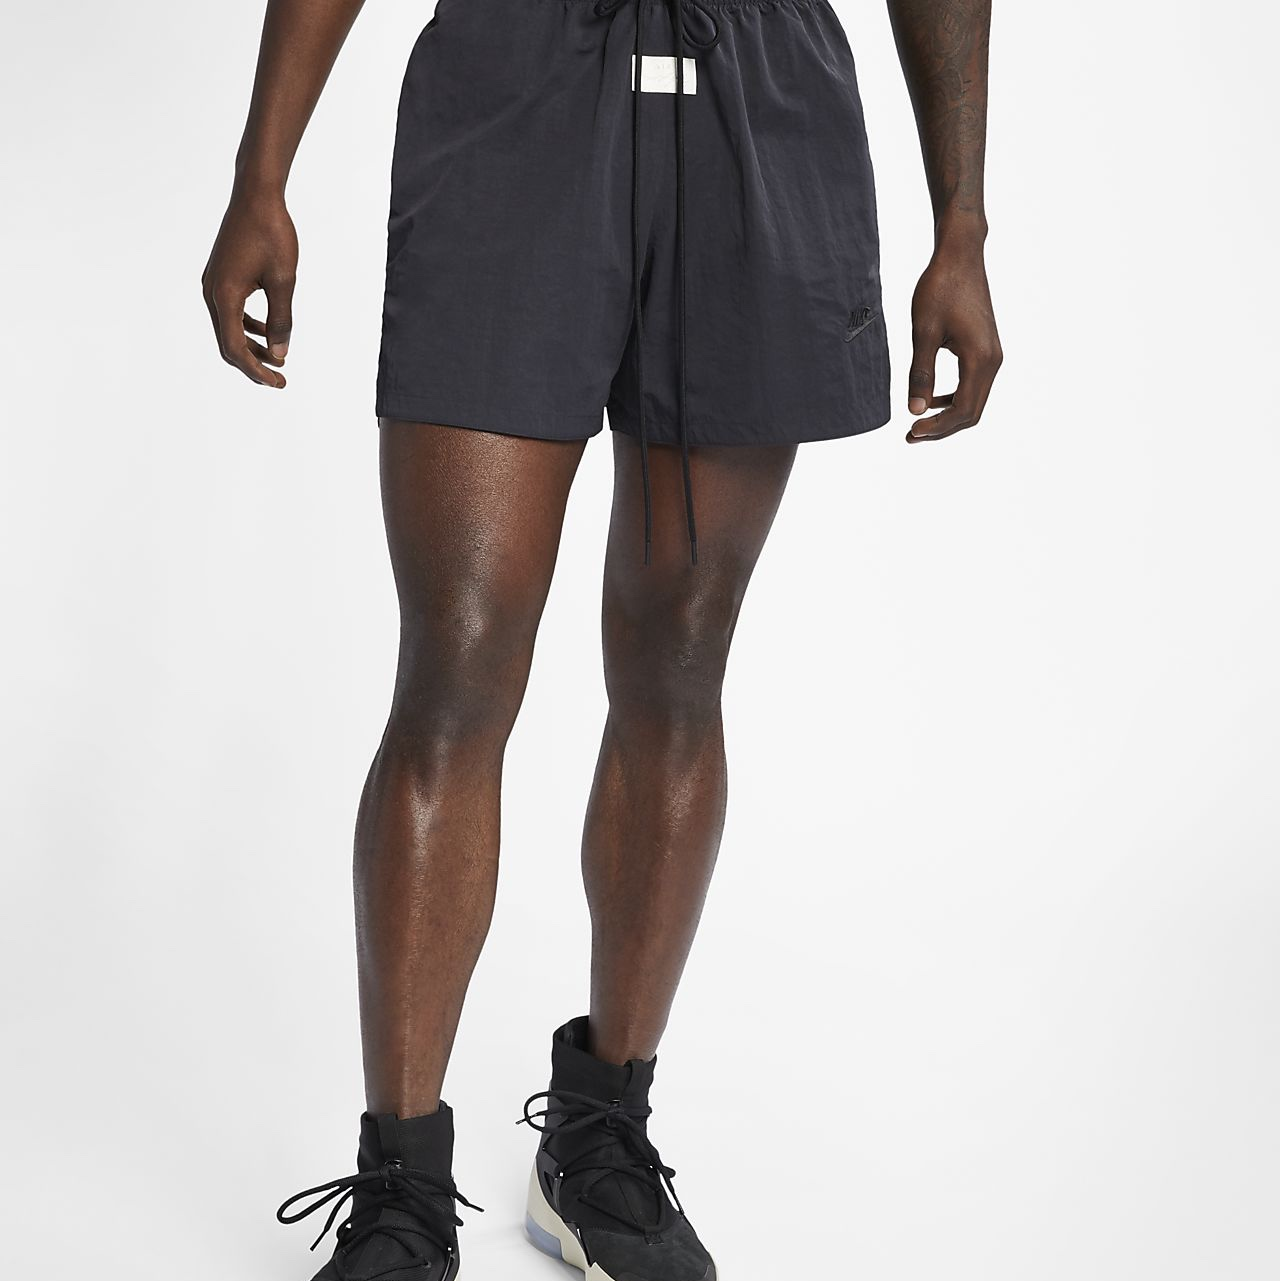 fear of god x nike shorts